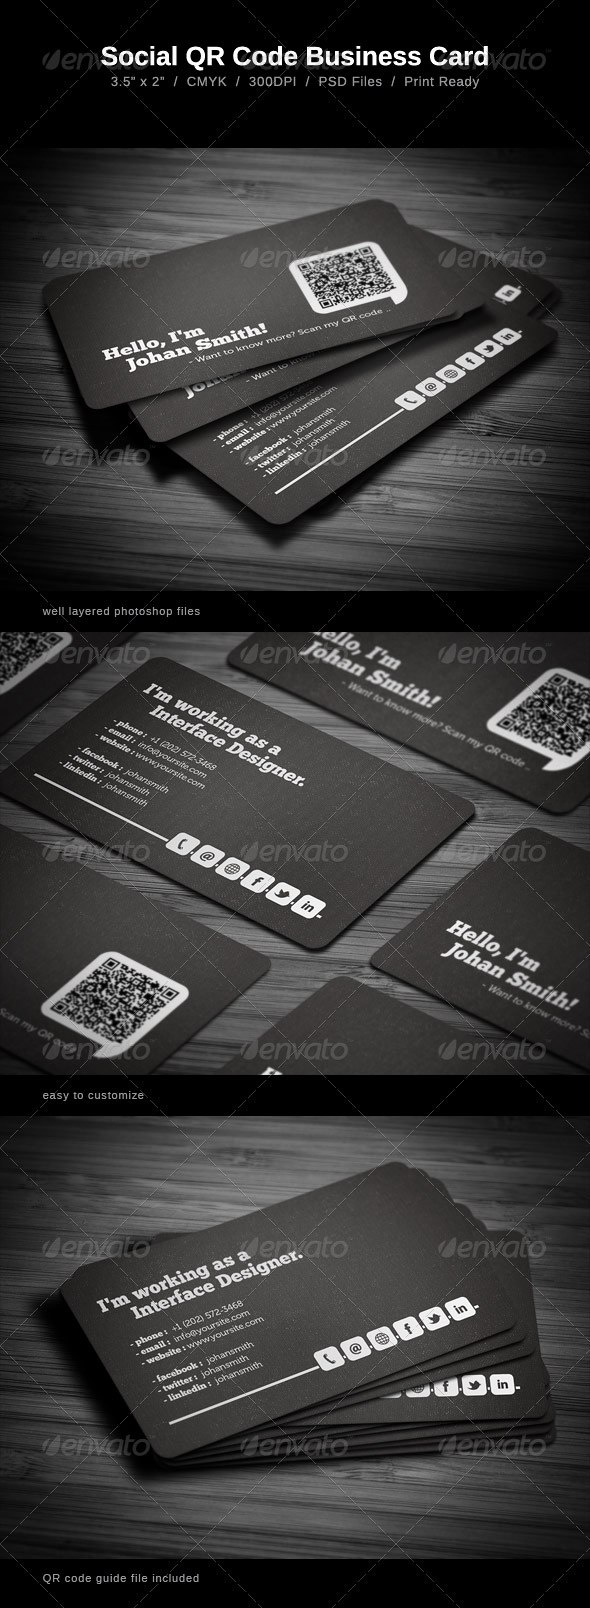 Noteworthy Back Of Business Cards Ideas Design  Marketing Throughout Qr Code Business Card Template